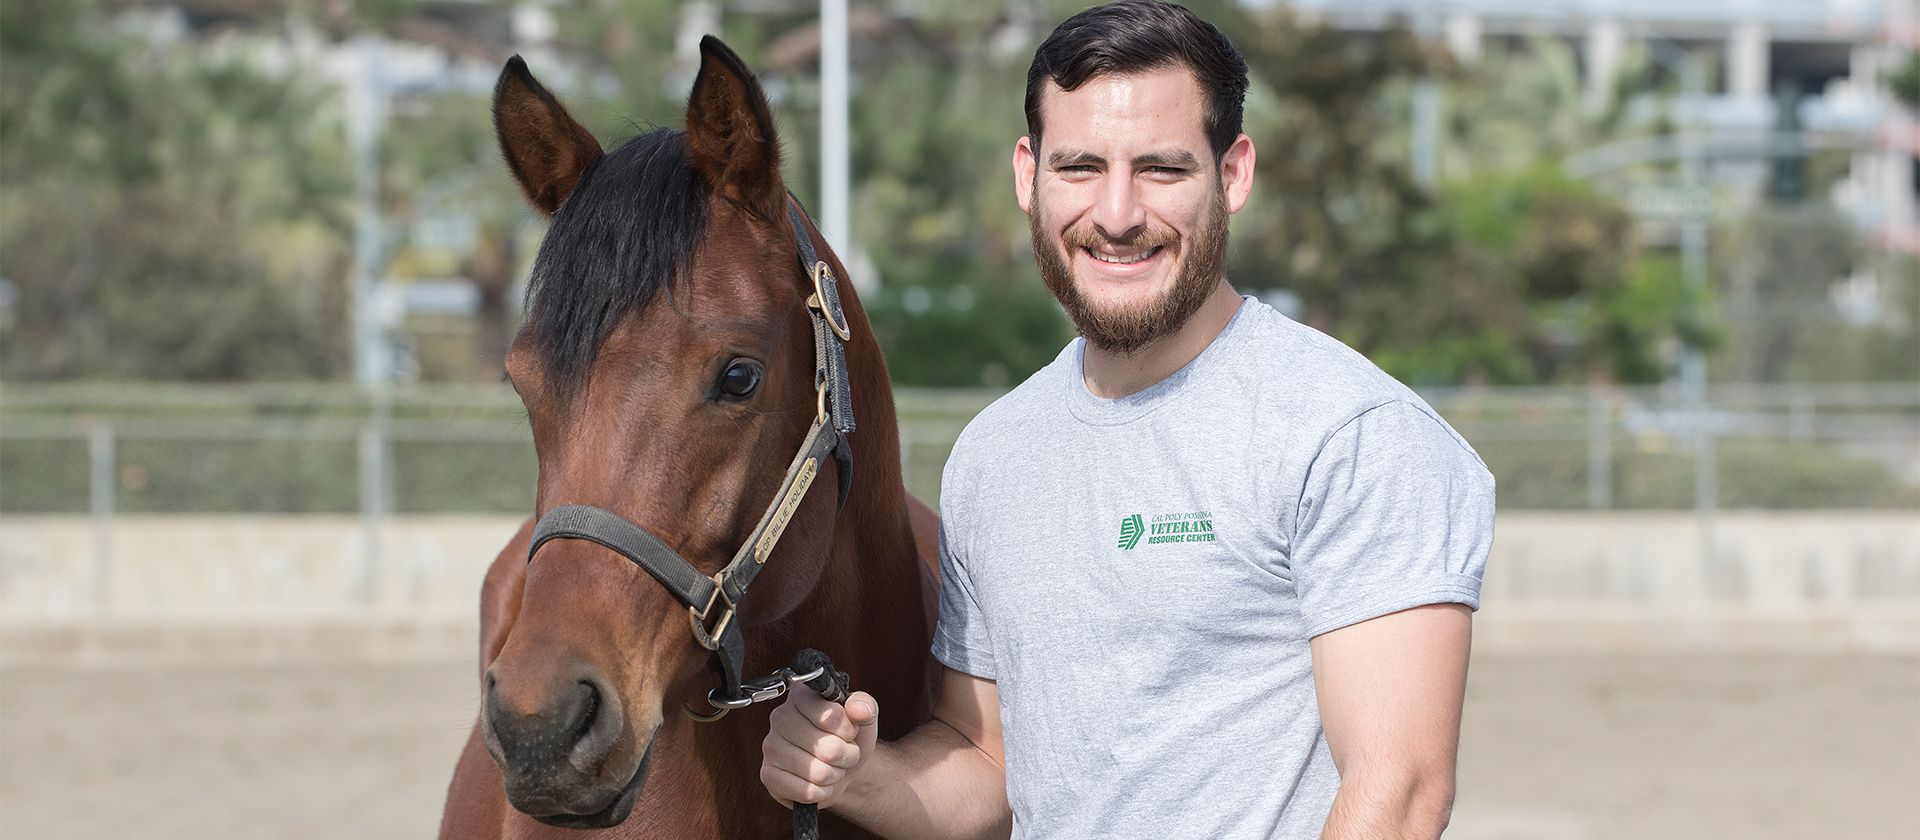 Jaime Orozco and a Horse